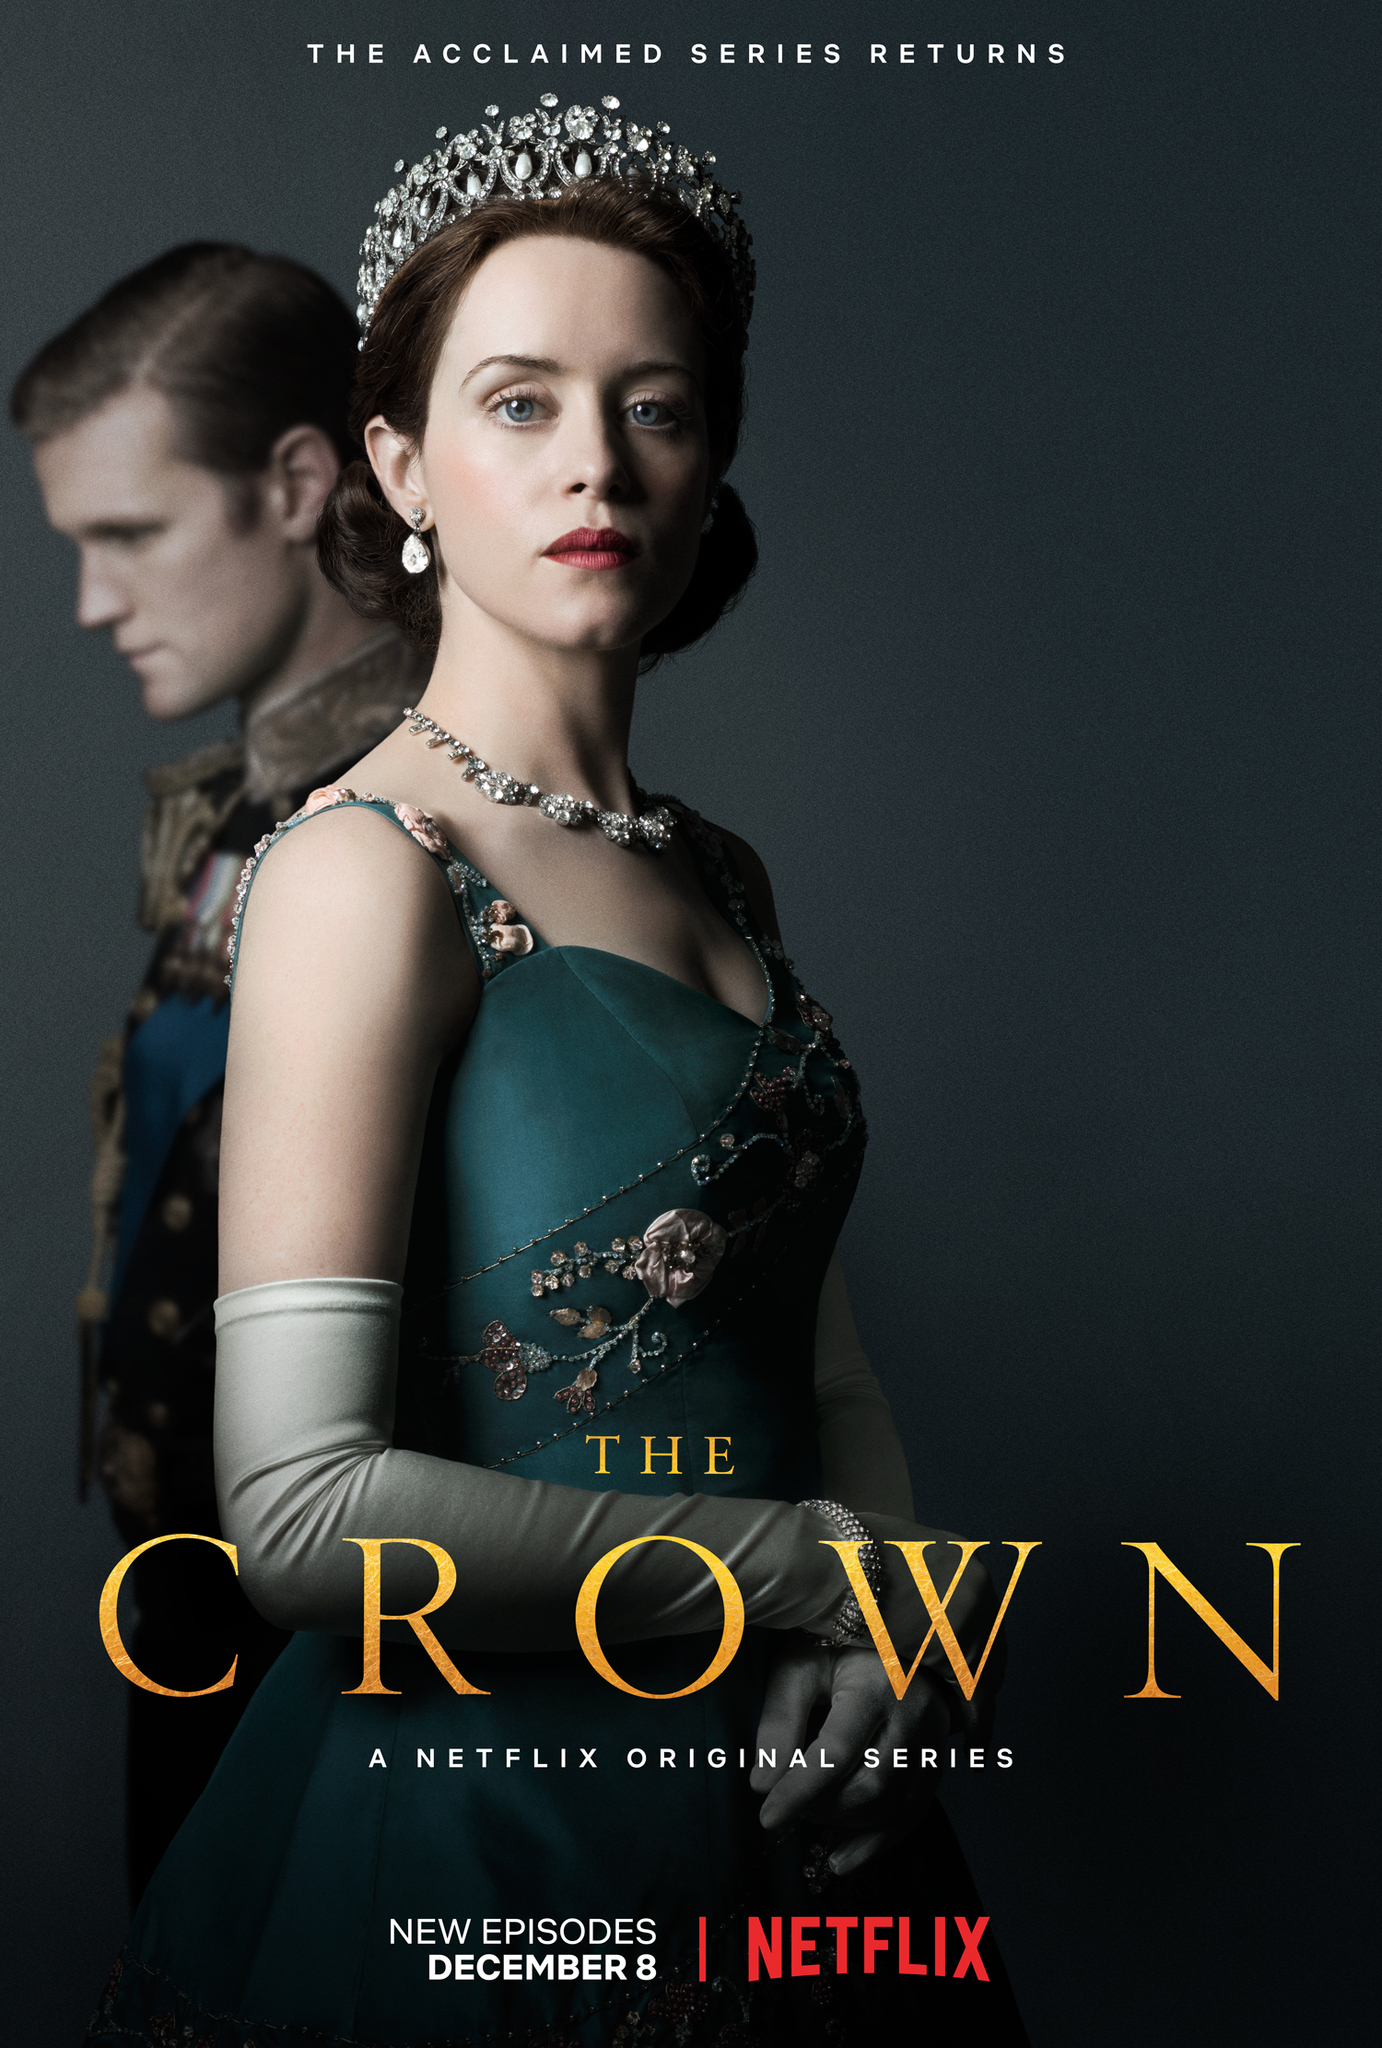 The.Crown.S02E01.German.Dubbed.DL.WEBRip.x264-BiGiNT